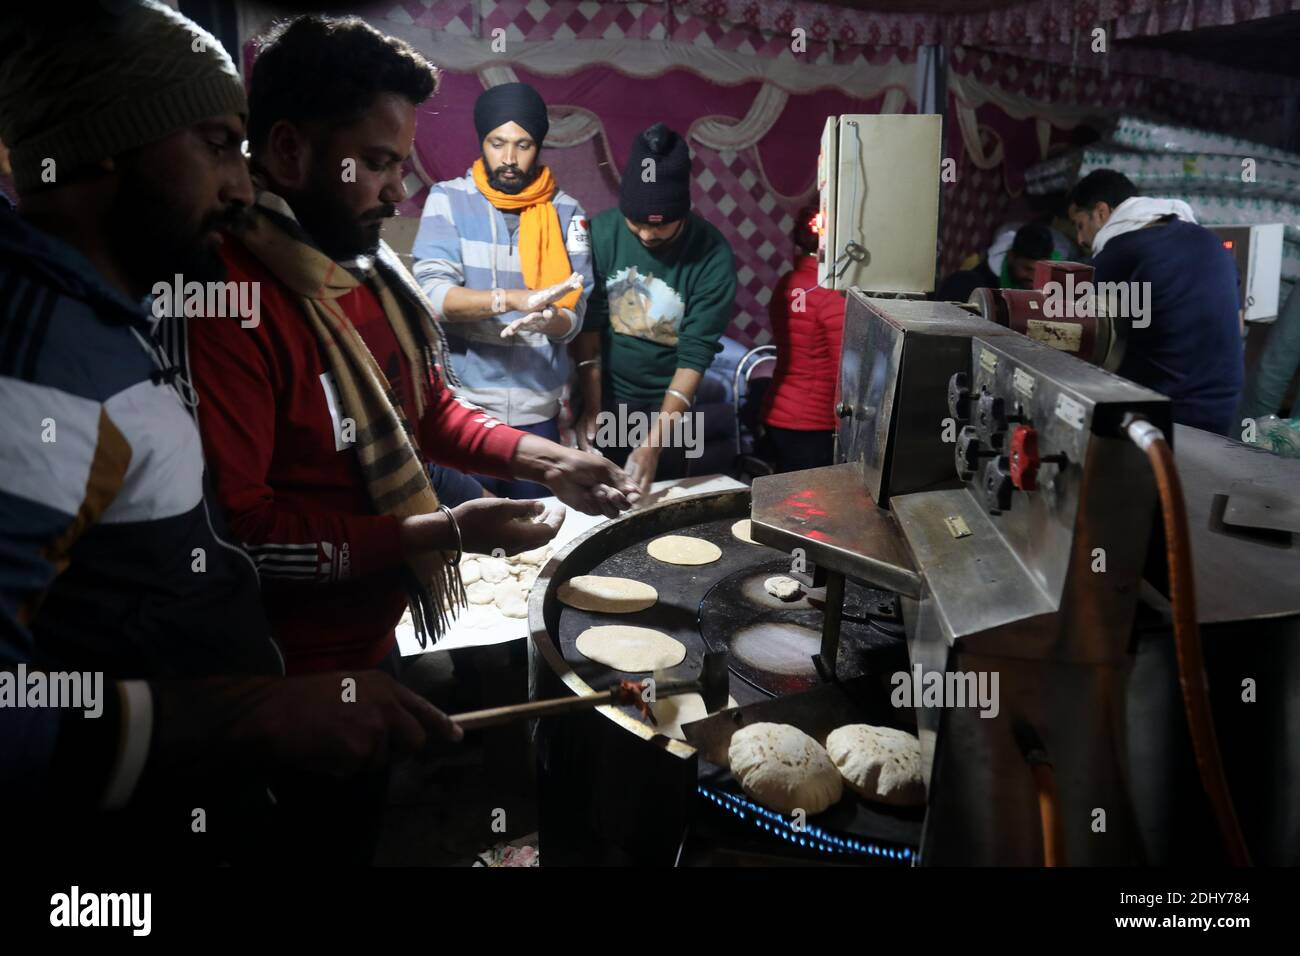 Protesters preparing meals for colleagues in a community kitchen conducted by Sikh organization during the demonstration. Thousands of farmers from Punjab, Haryana and Uttar Pradesh blocked Singhu border (Delhi-Haryana Highway), Ghazipur border (Delhi-Meerut Highway), Tikri border and Gurugram Border agitating for the 17 days. Against the Centre's new farm reform laws.  Indian Union Minister of Agriculture and Farmers Welfare, Narendra Singh Tomar appeals to farmers to end their protest and work with the government. Stock Photo